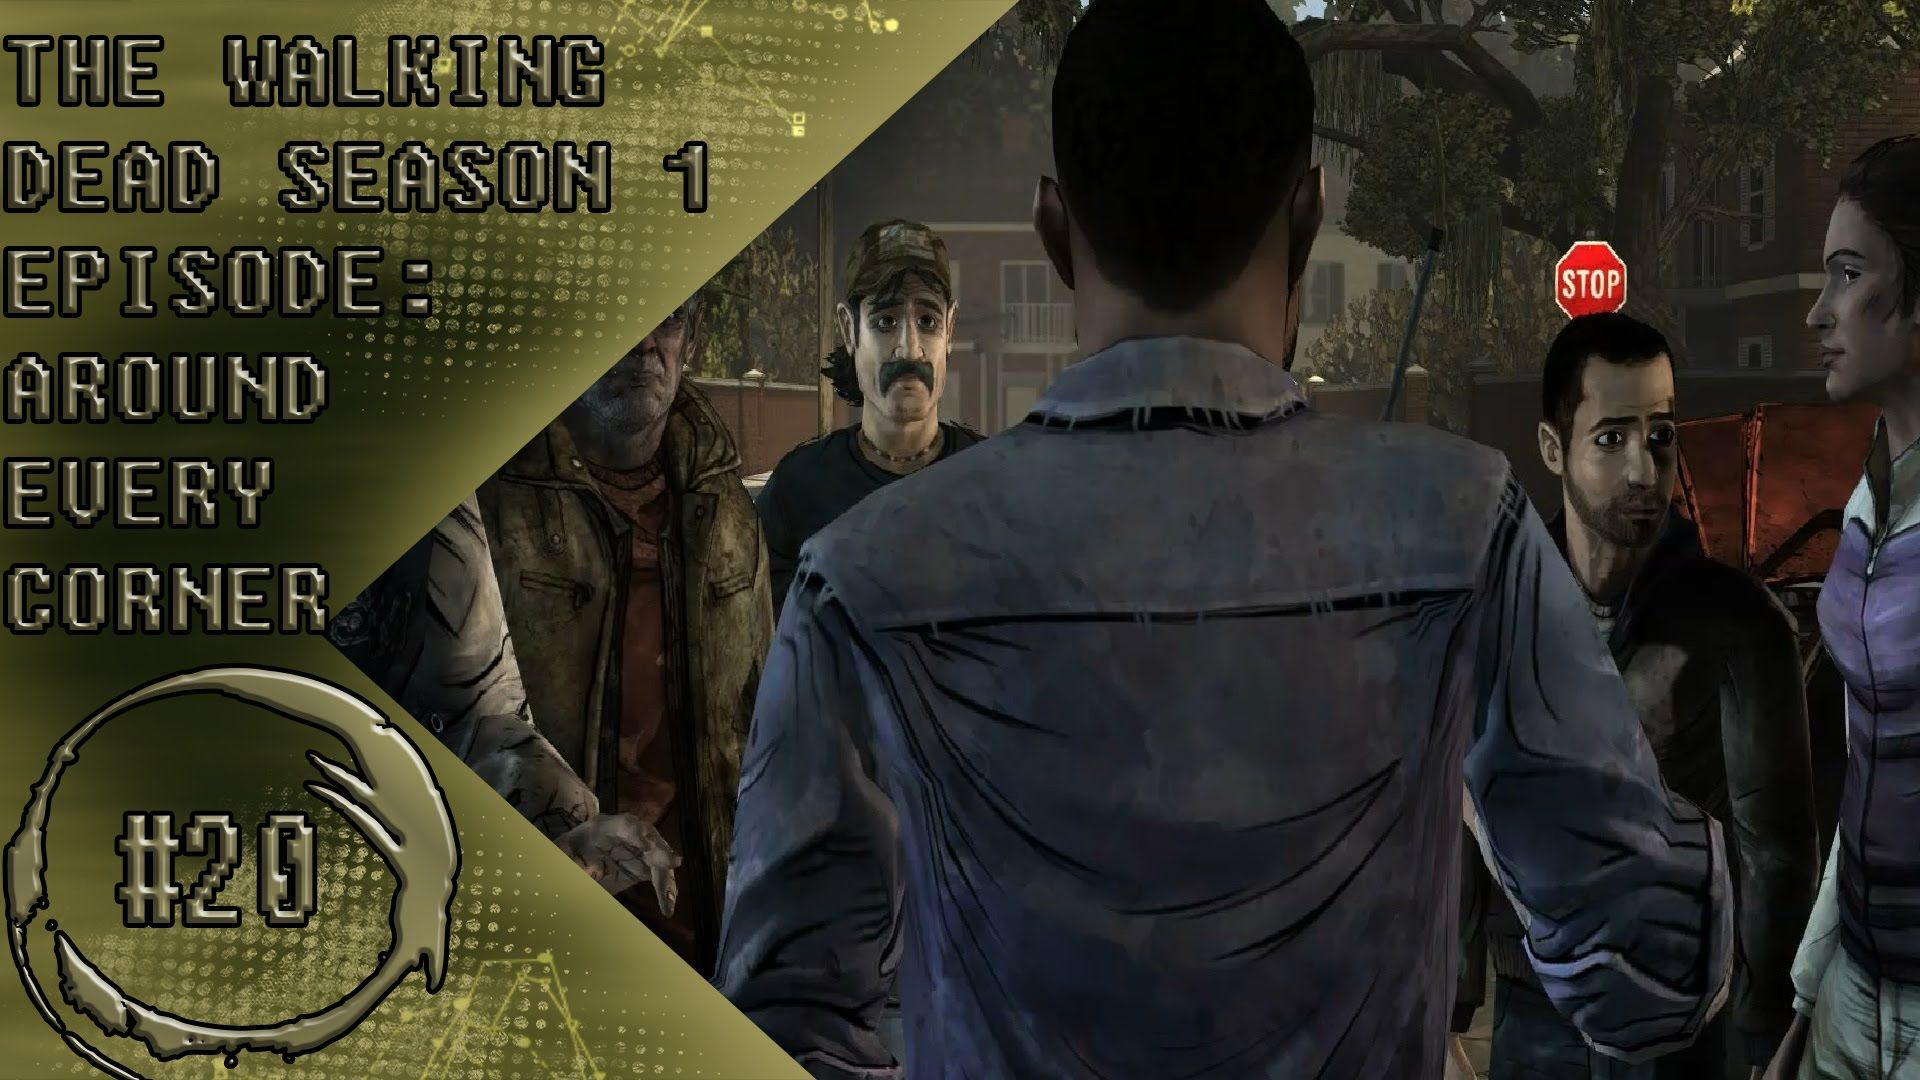 THE WALKING DEAD SEASON 1 EPISODE 4 AROUND EVERY CORNER PART 1 NEW HOUSE